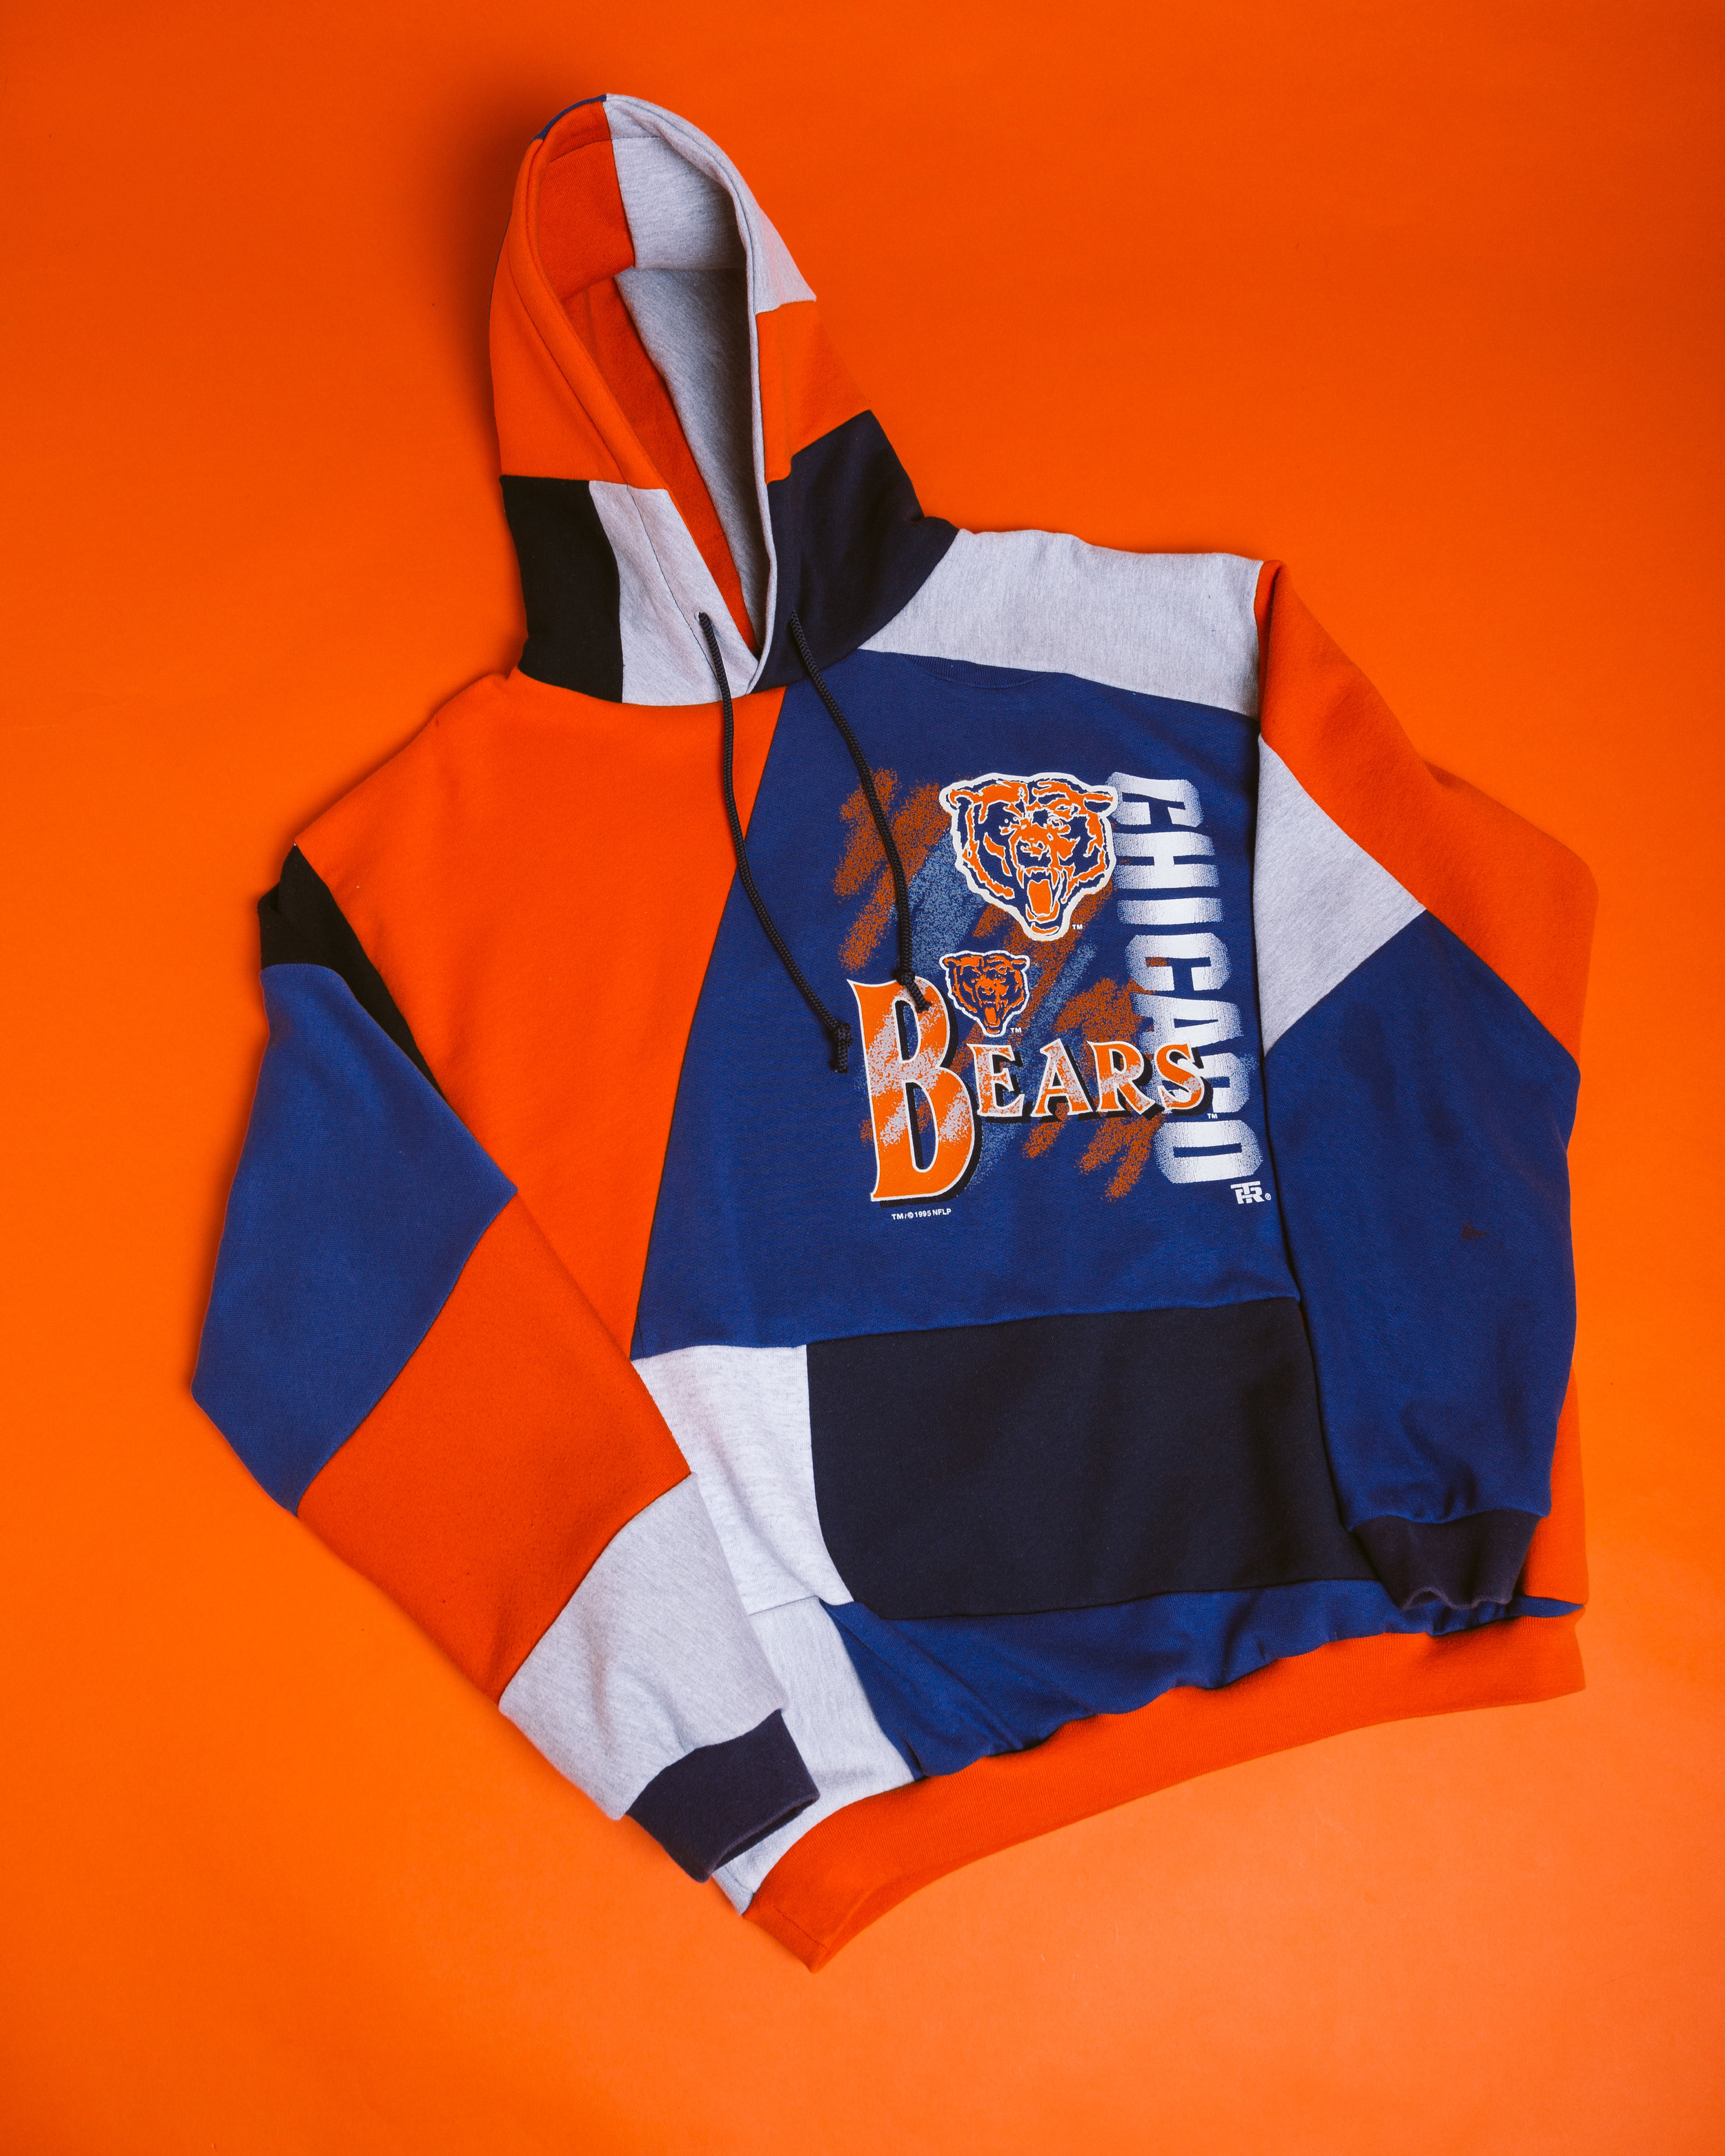 Bears Hoodie - Made reconstructing a vintage crewneck for the home team.